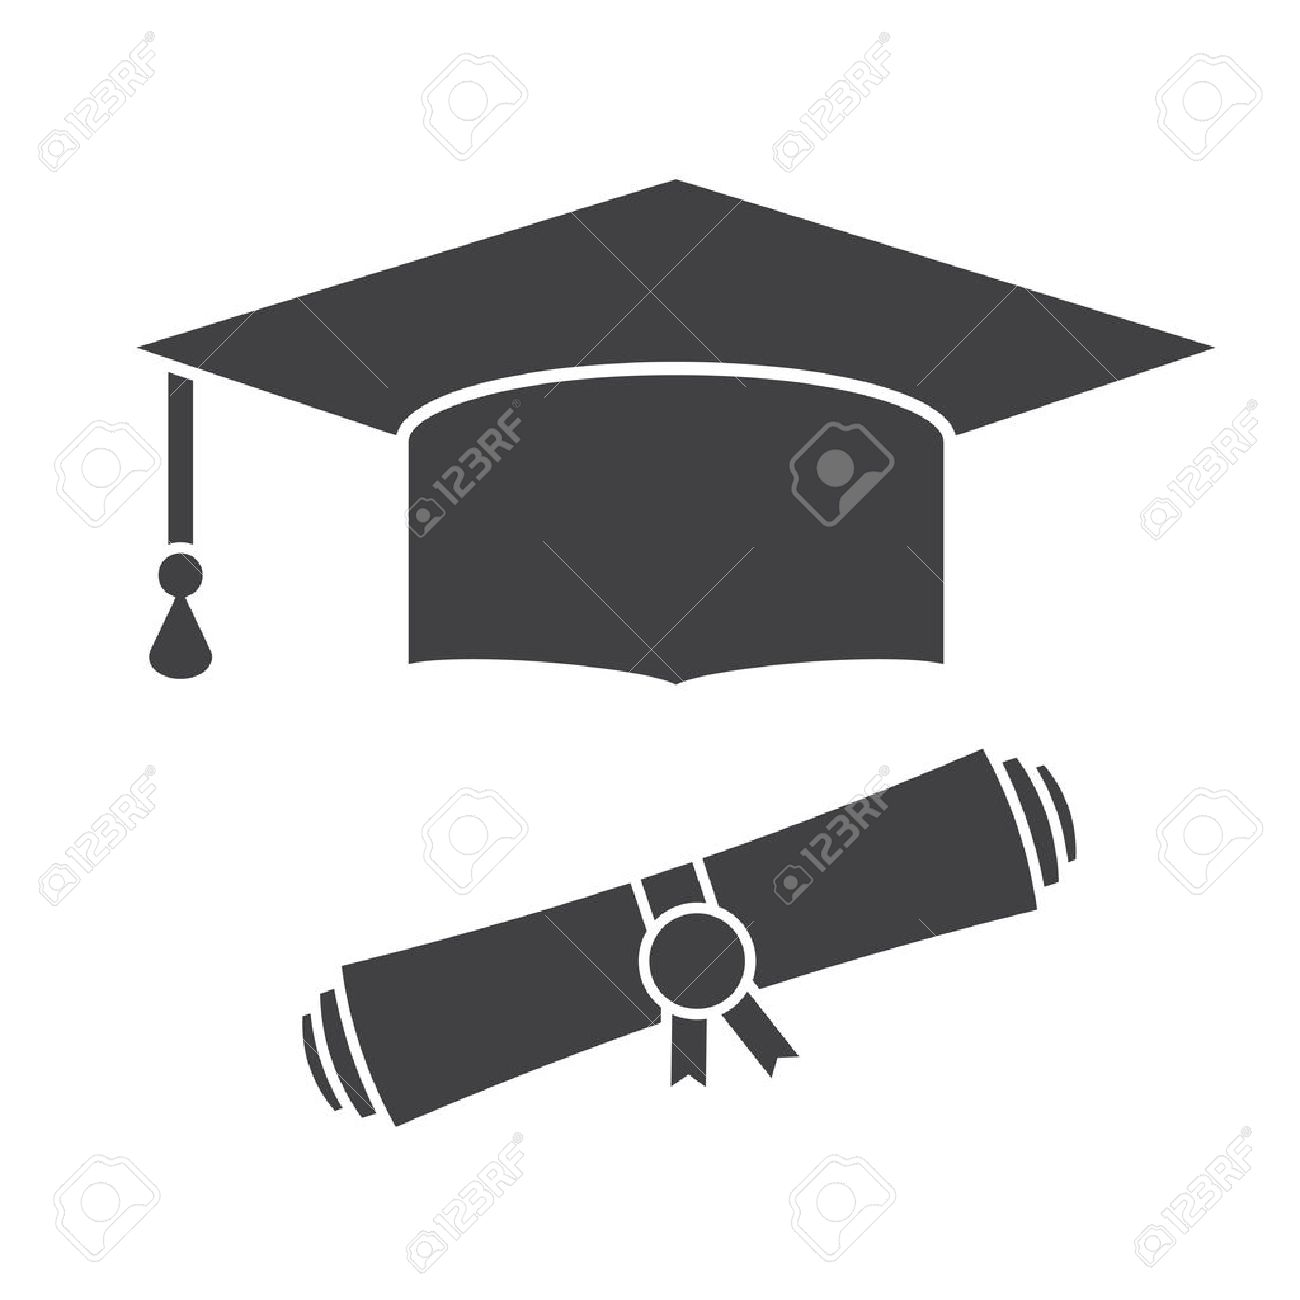 Graduation hat and diploma scroll outline vector icon. Graduation celebration cap silhouette pictogram for web and applications. Isolated vector graduation student hat - 53508308